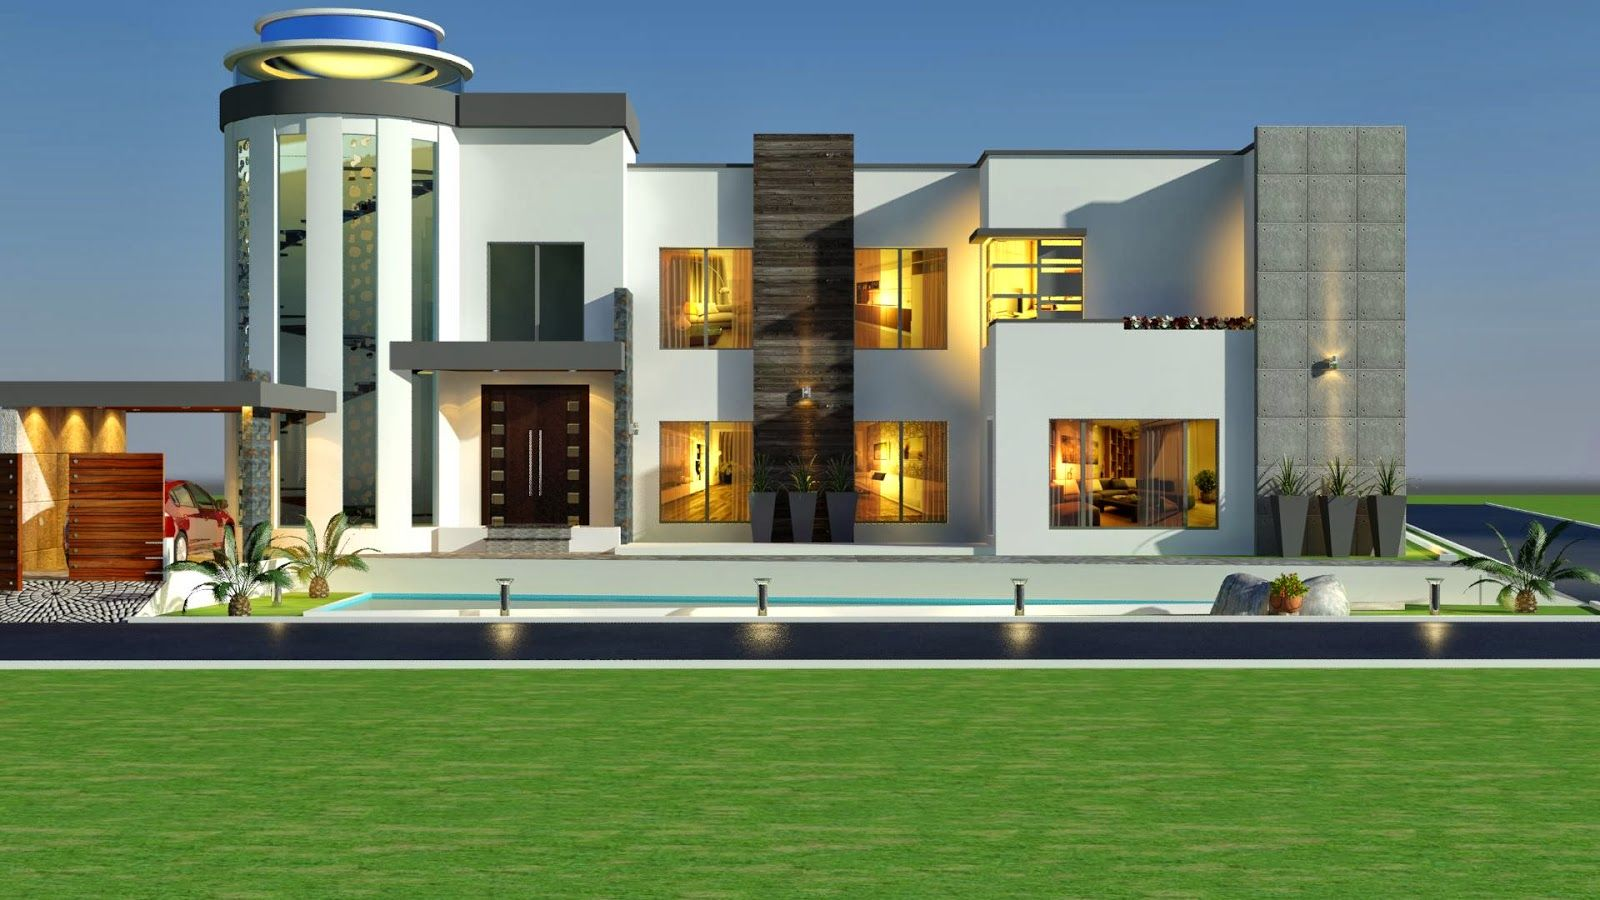 Villa house 2014 3d front elevation kanal modern for Modern villa plans and elevations